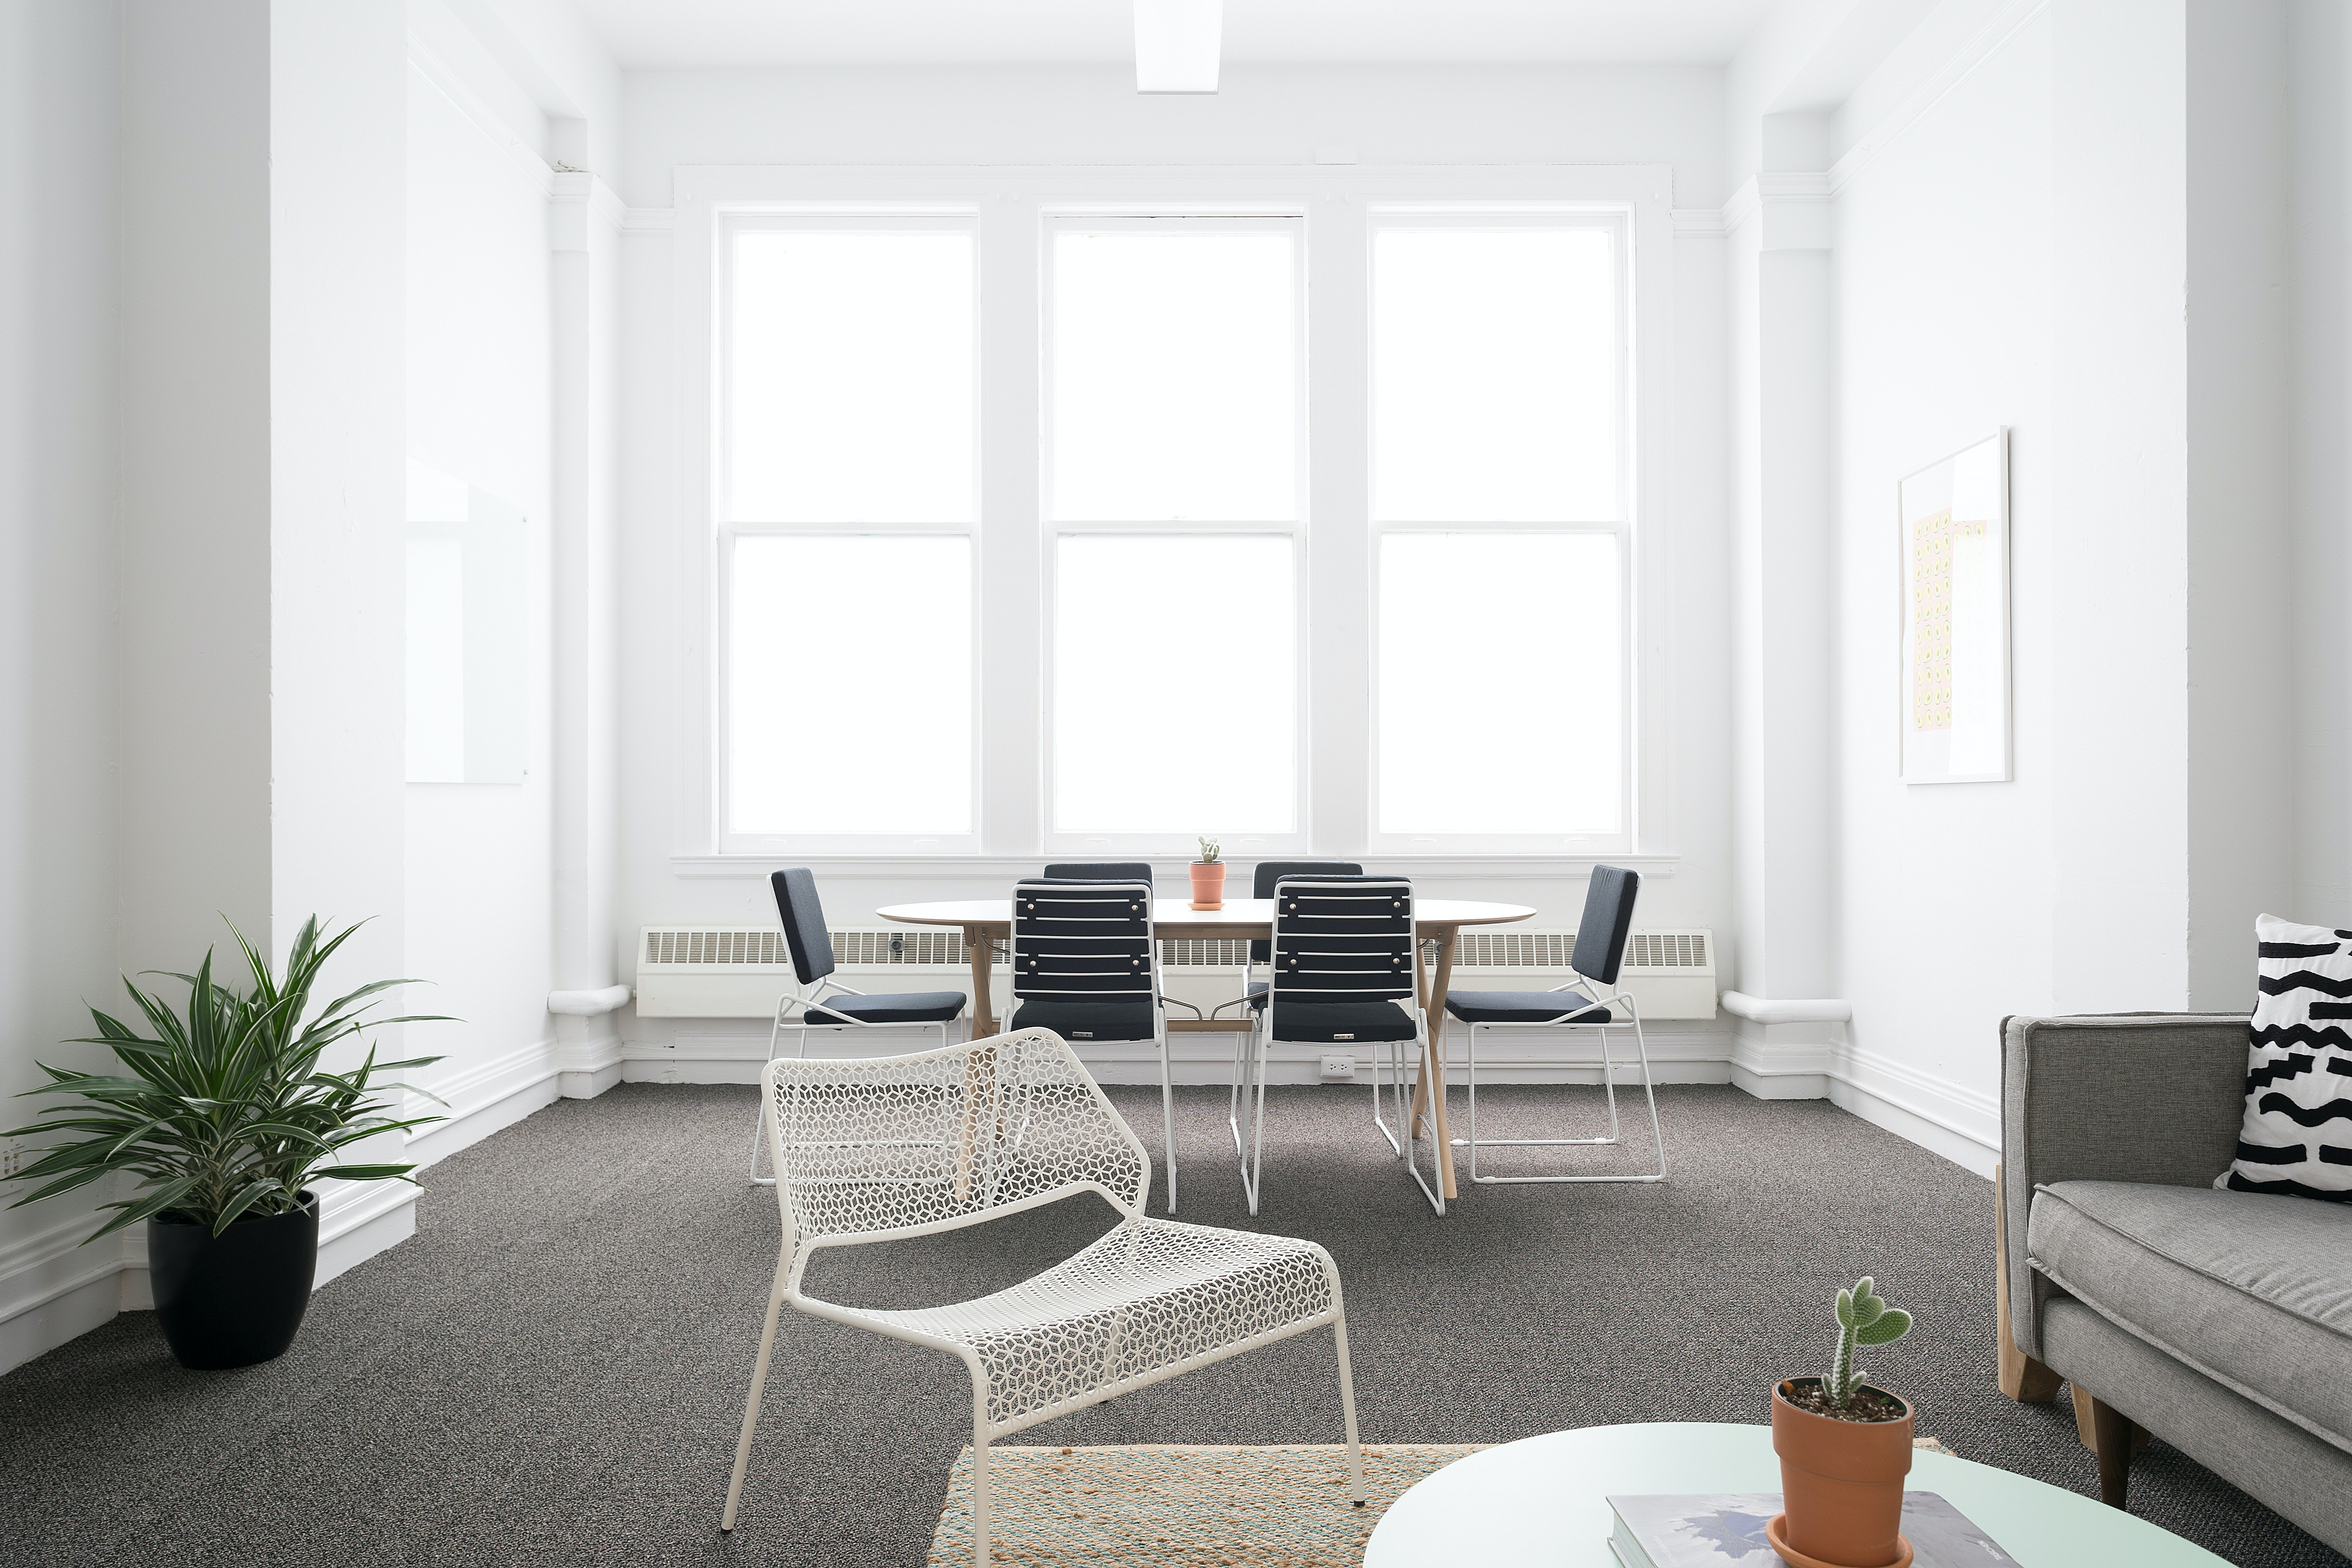 interview space at 833 Market Street ,San Francisco